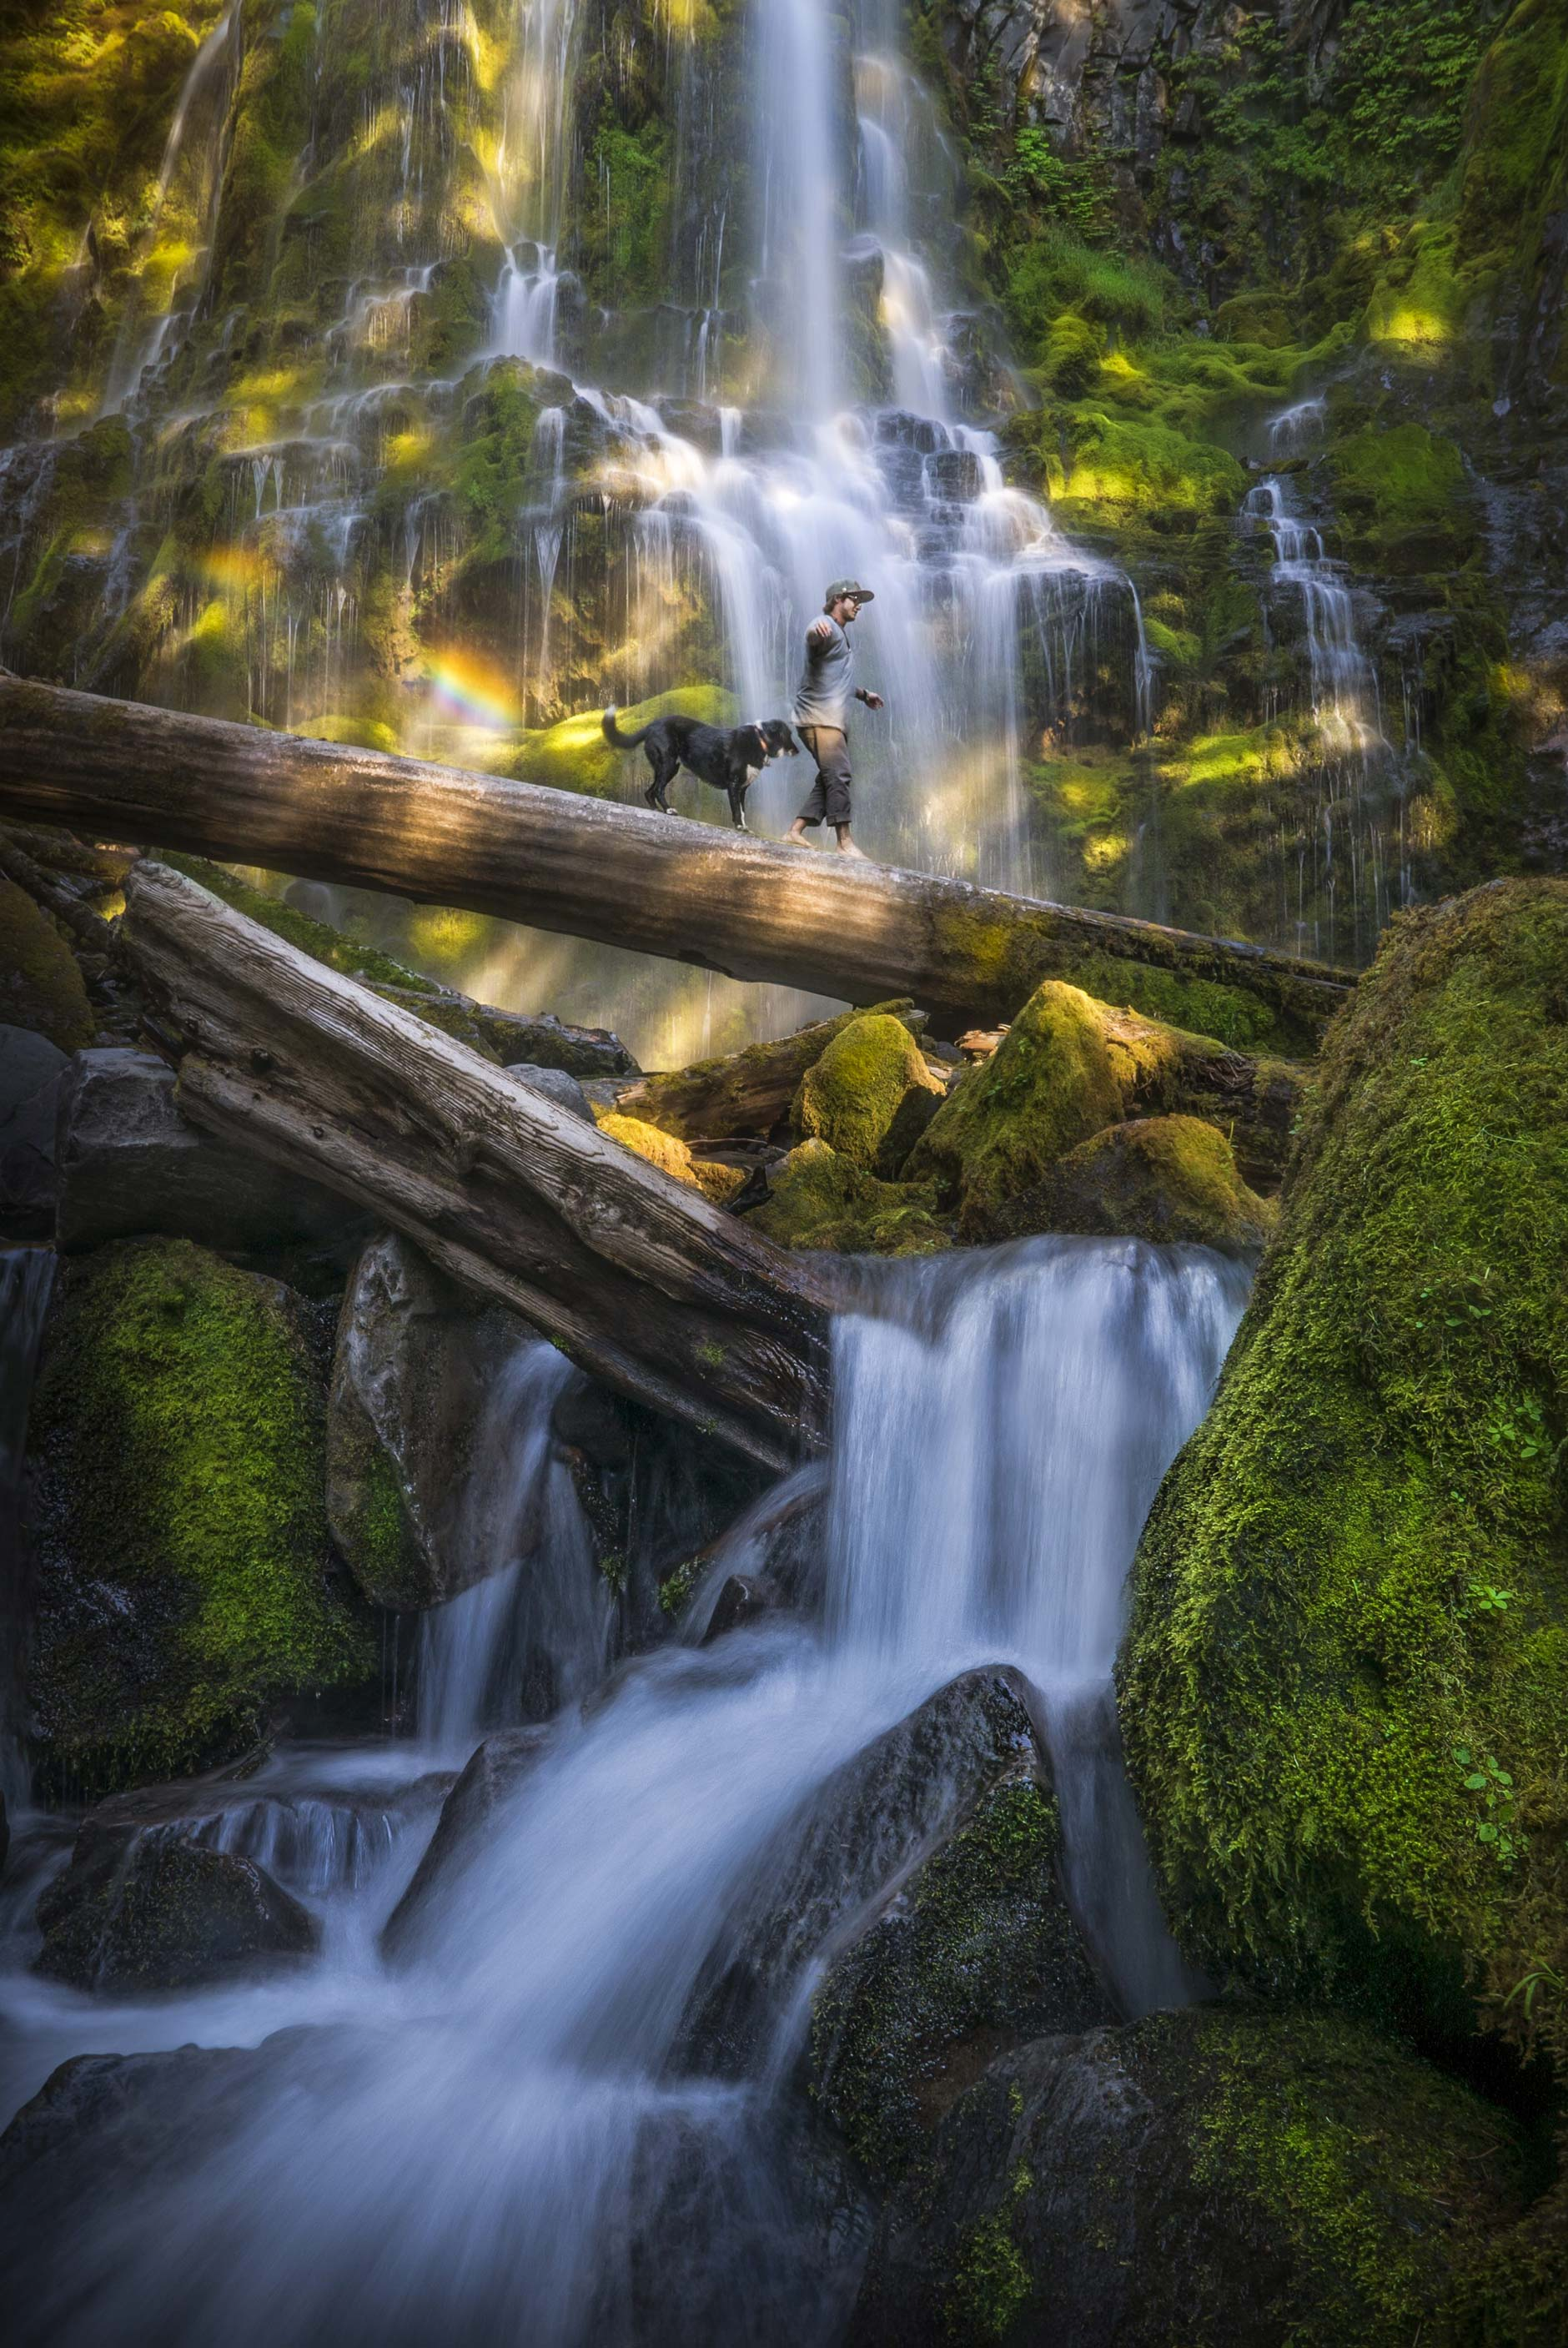 Landscape photography of a boy and his dog on a log at Proxy Falls, Oregon